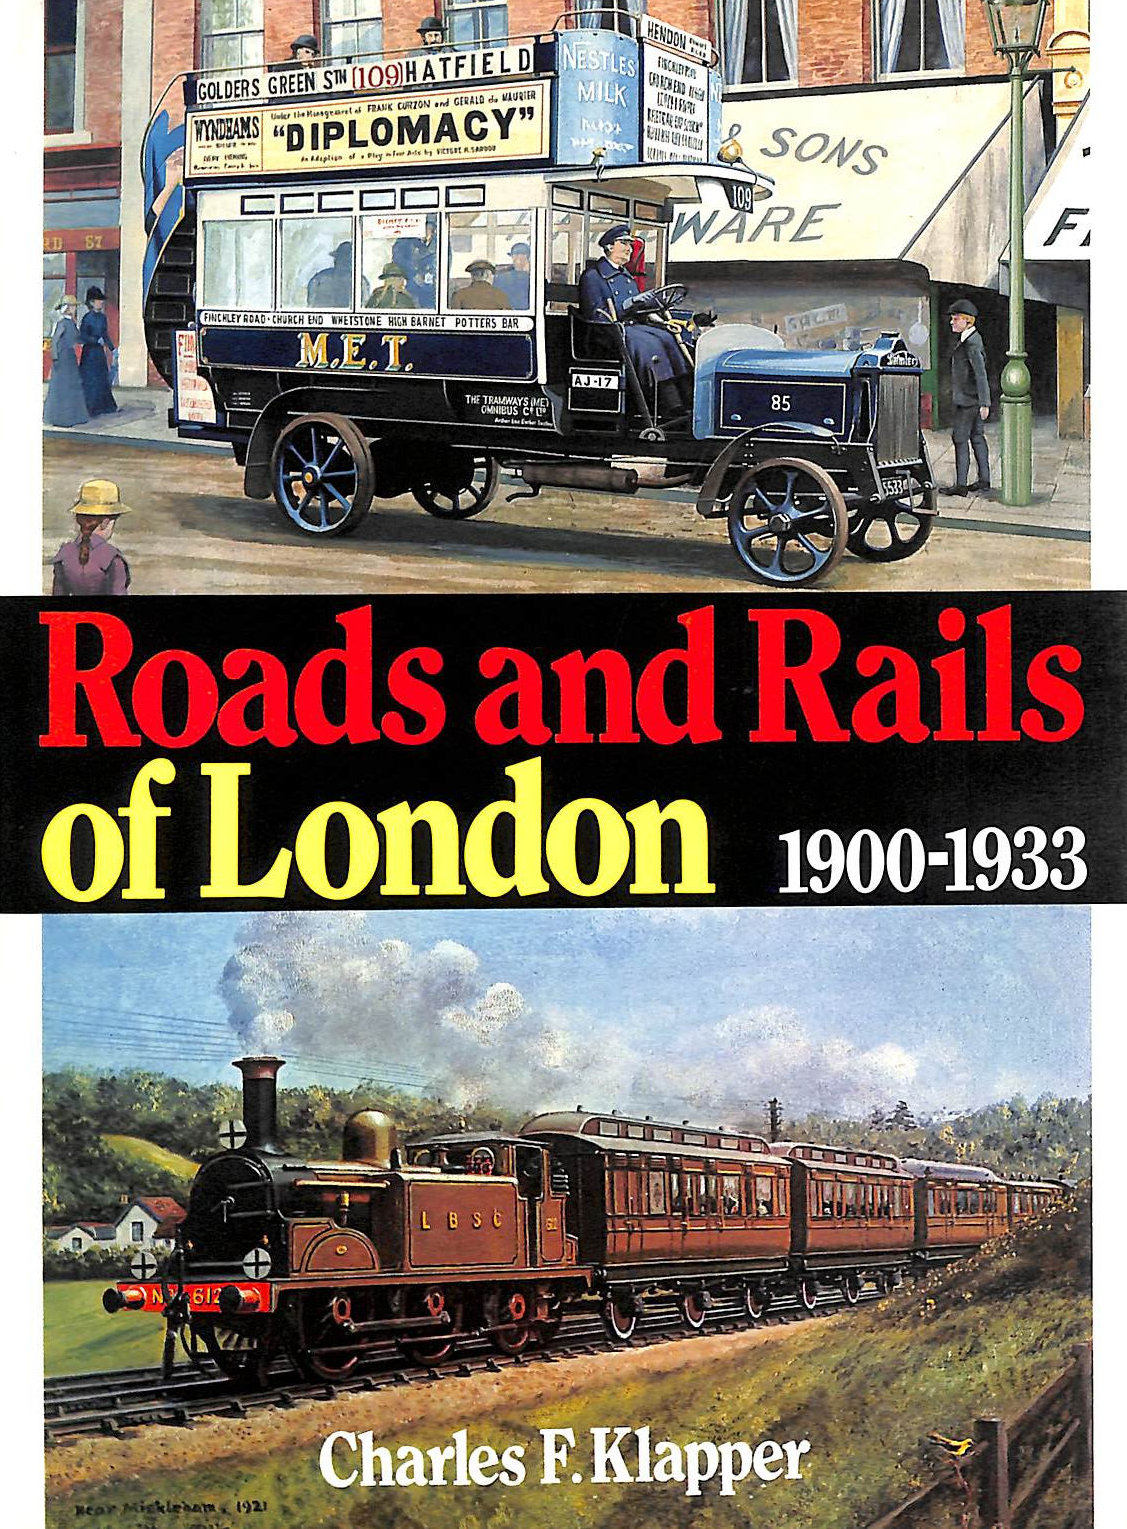 Image for Roads and Rails of London 1900-1933